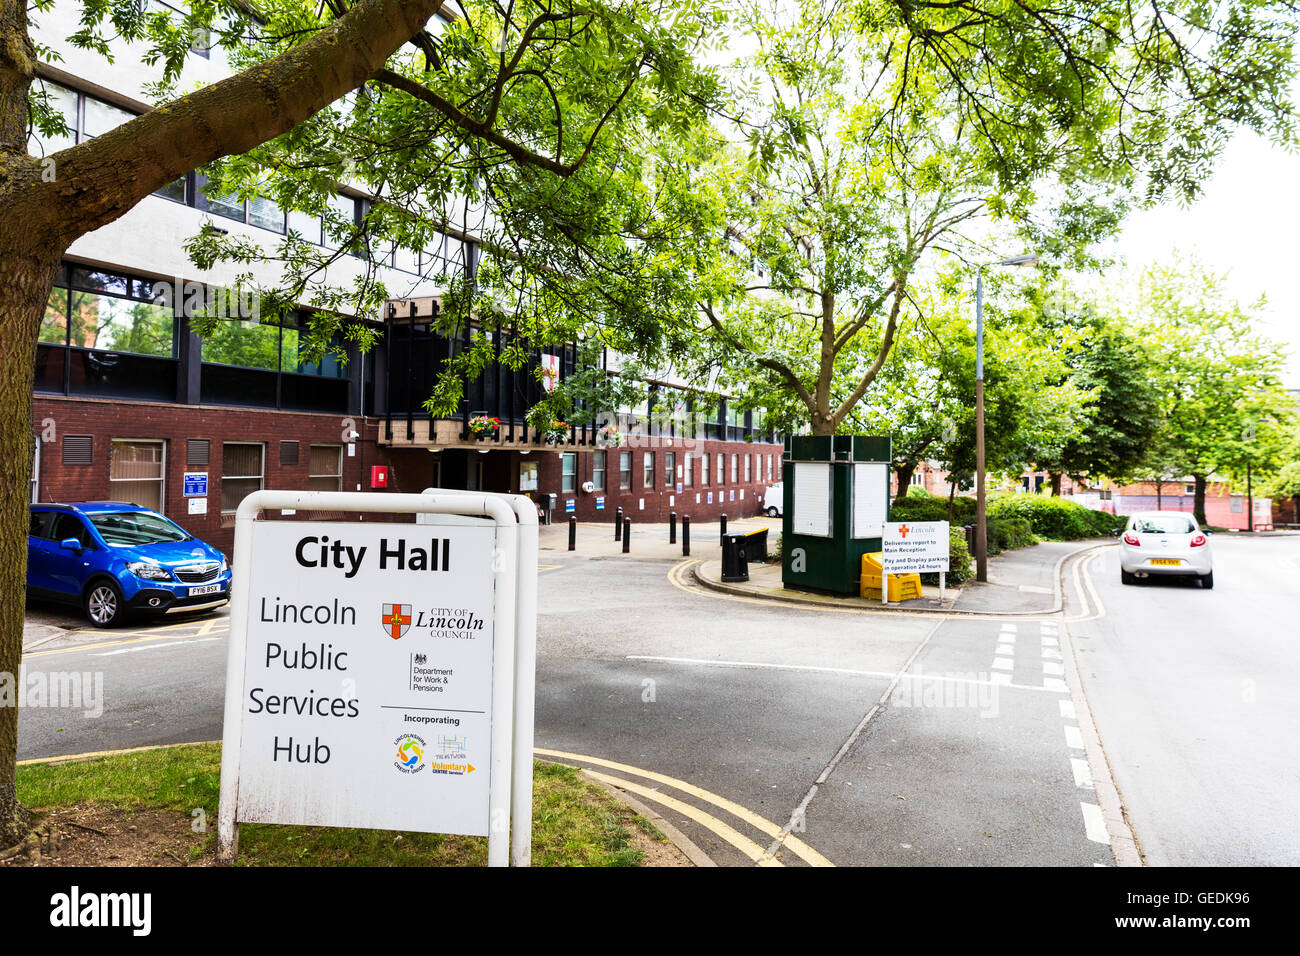 Lincoln City Hall Lincoln city Lincolnshire council offices UK Building sign exterior England GB - Stock Image